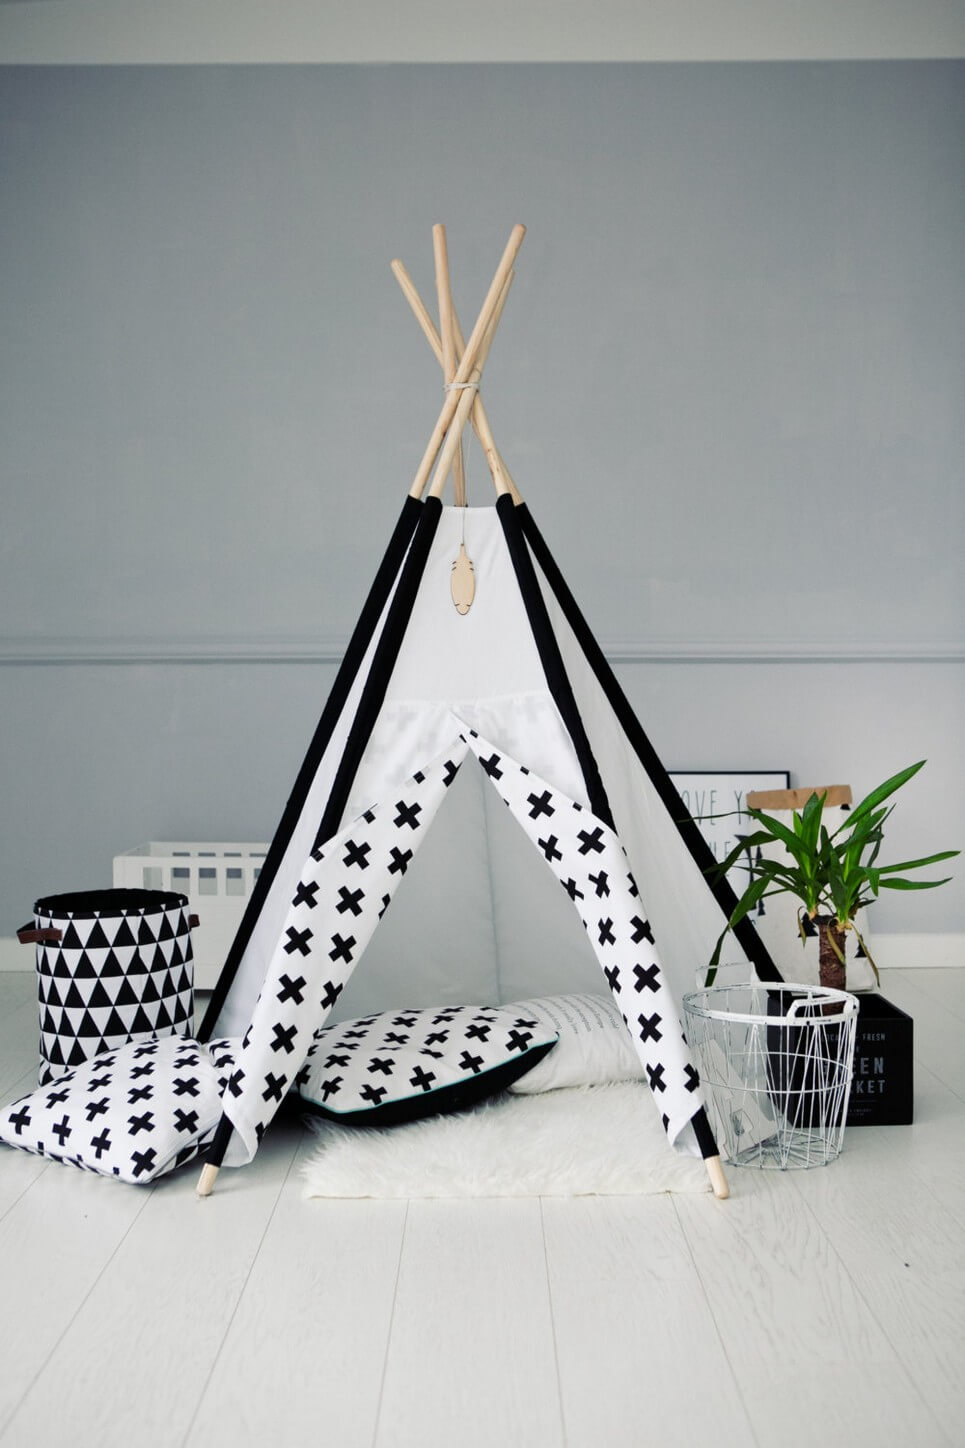 Black u0026 White Childrenu0027s Play Teepee & BLACK u0026 WHITE CHILDRENu0027S TEEPEE TENT | Decorative Kidsu0027 Play Tents ...